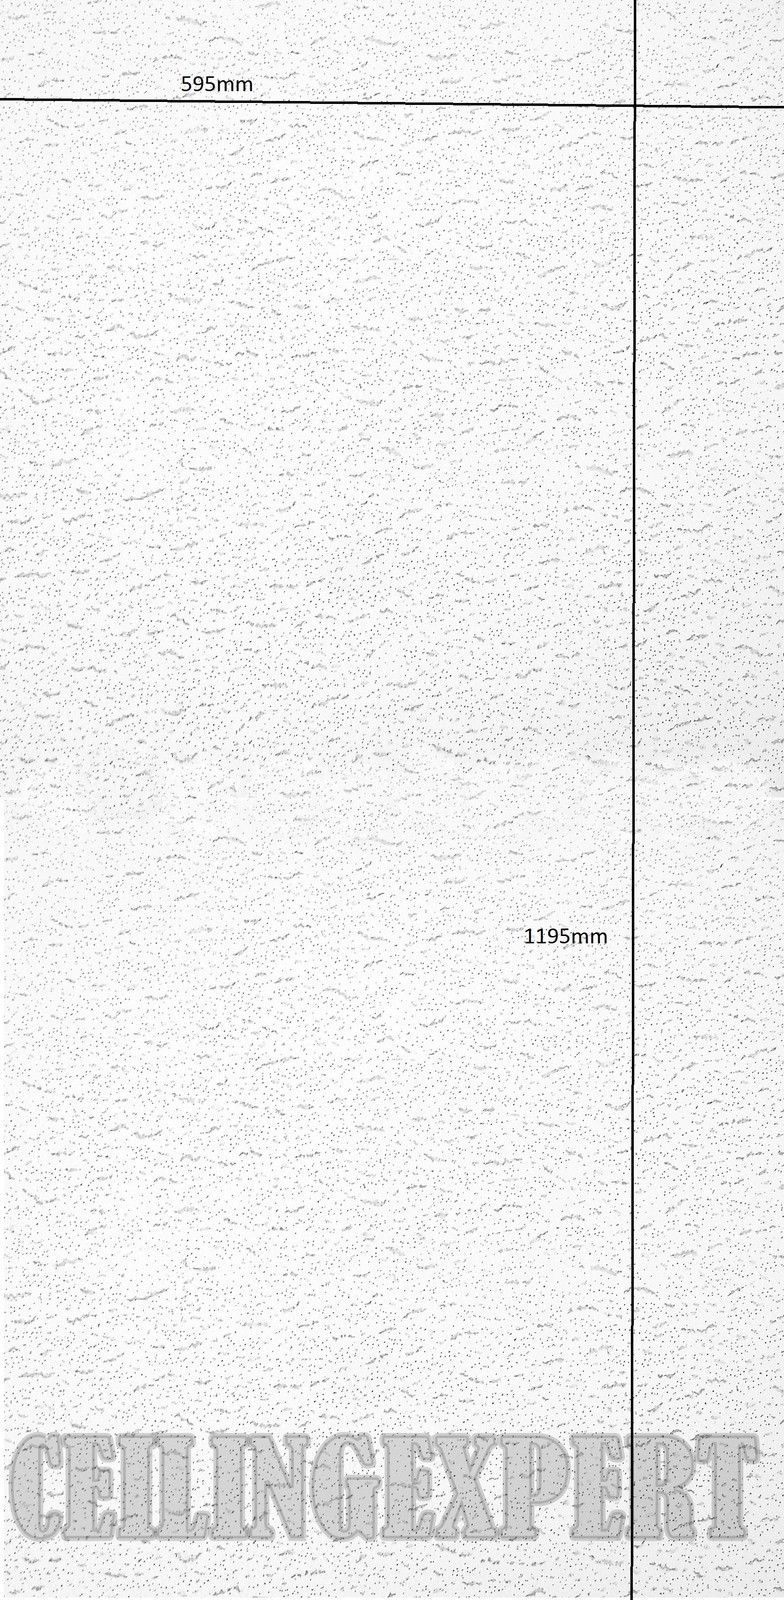 Tatra flat ceiling tiles board 1200 x 600mm square edge 24mm grid uk armstrong tatra flat ceiling tiles board 1200 x 600mm square edge 24mm grid uk dailygadgetfo Gallery